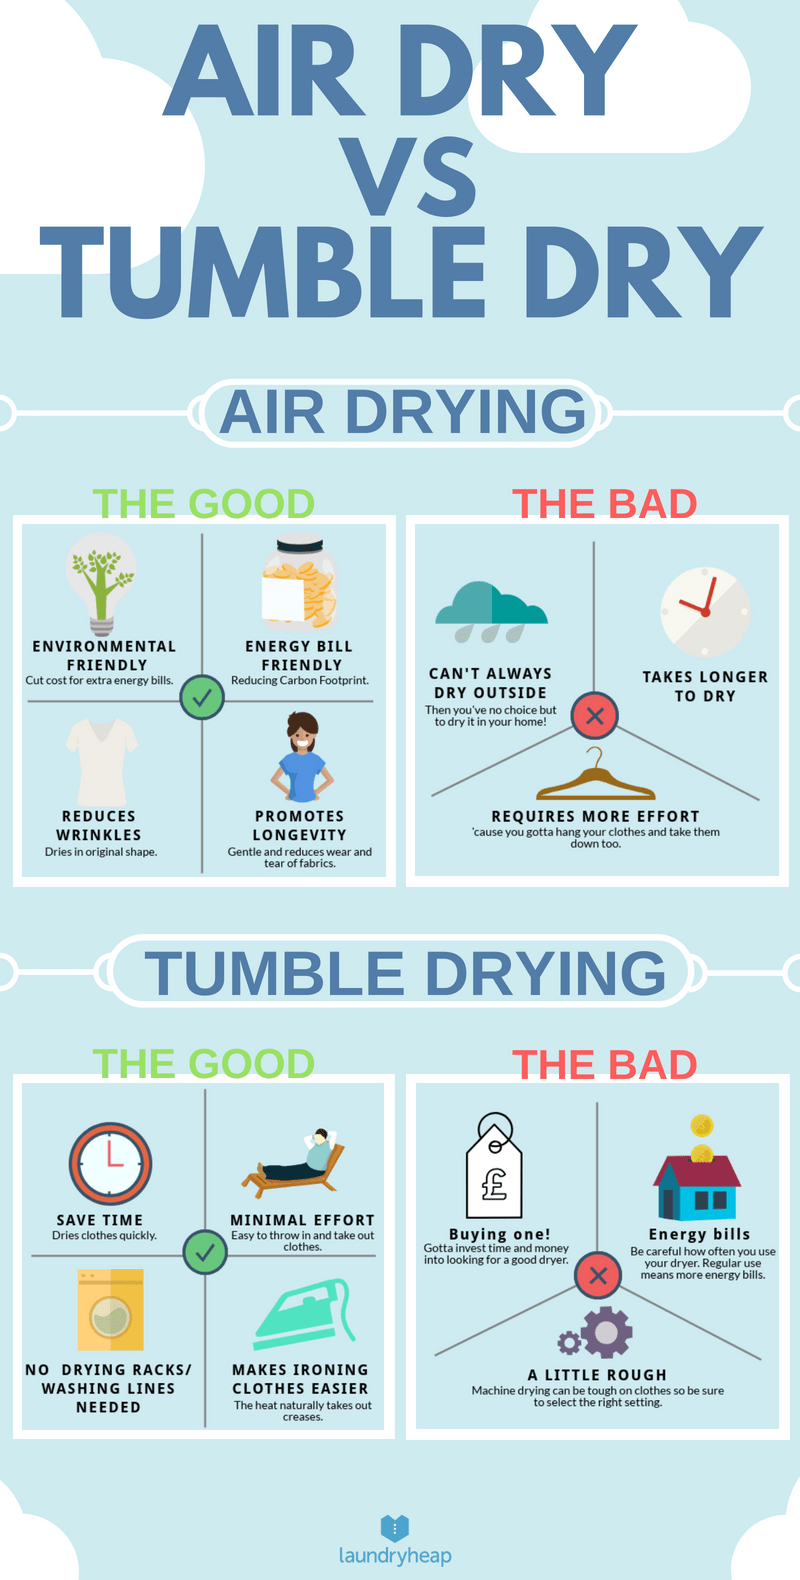 Air dry vs tumble dry infographic